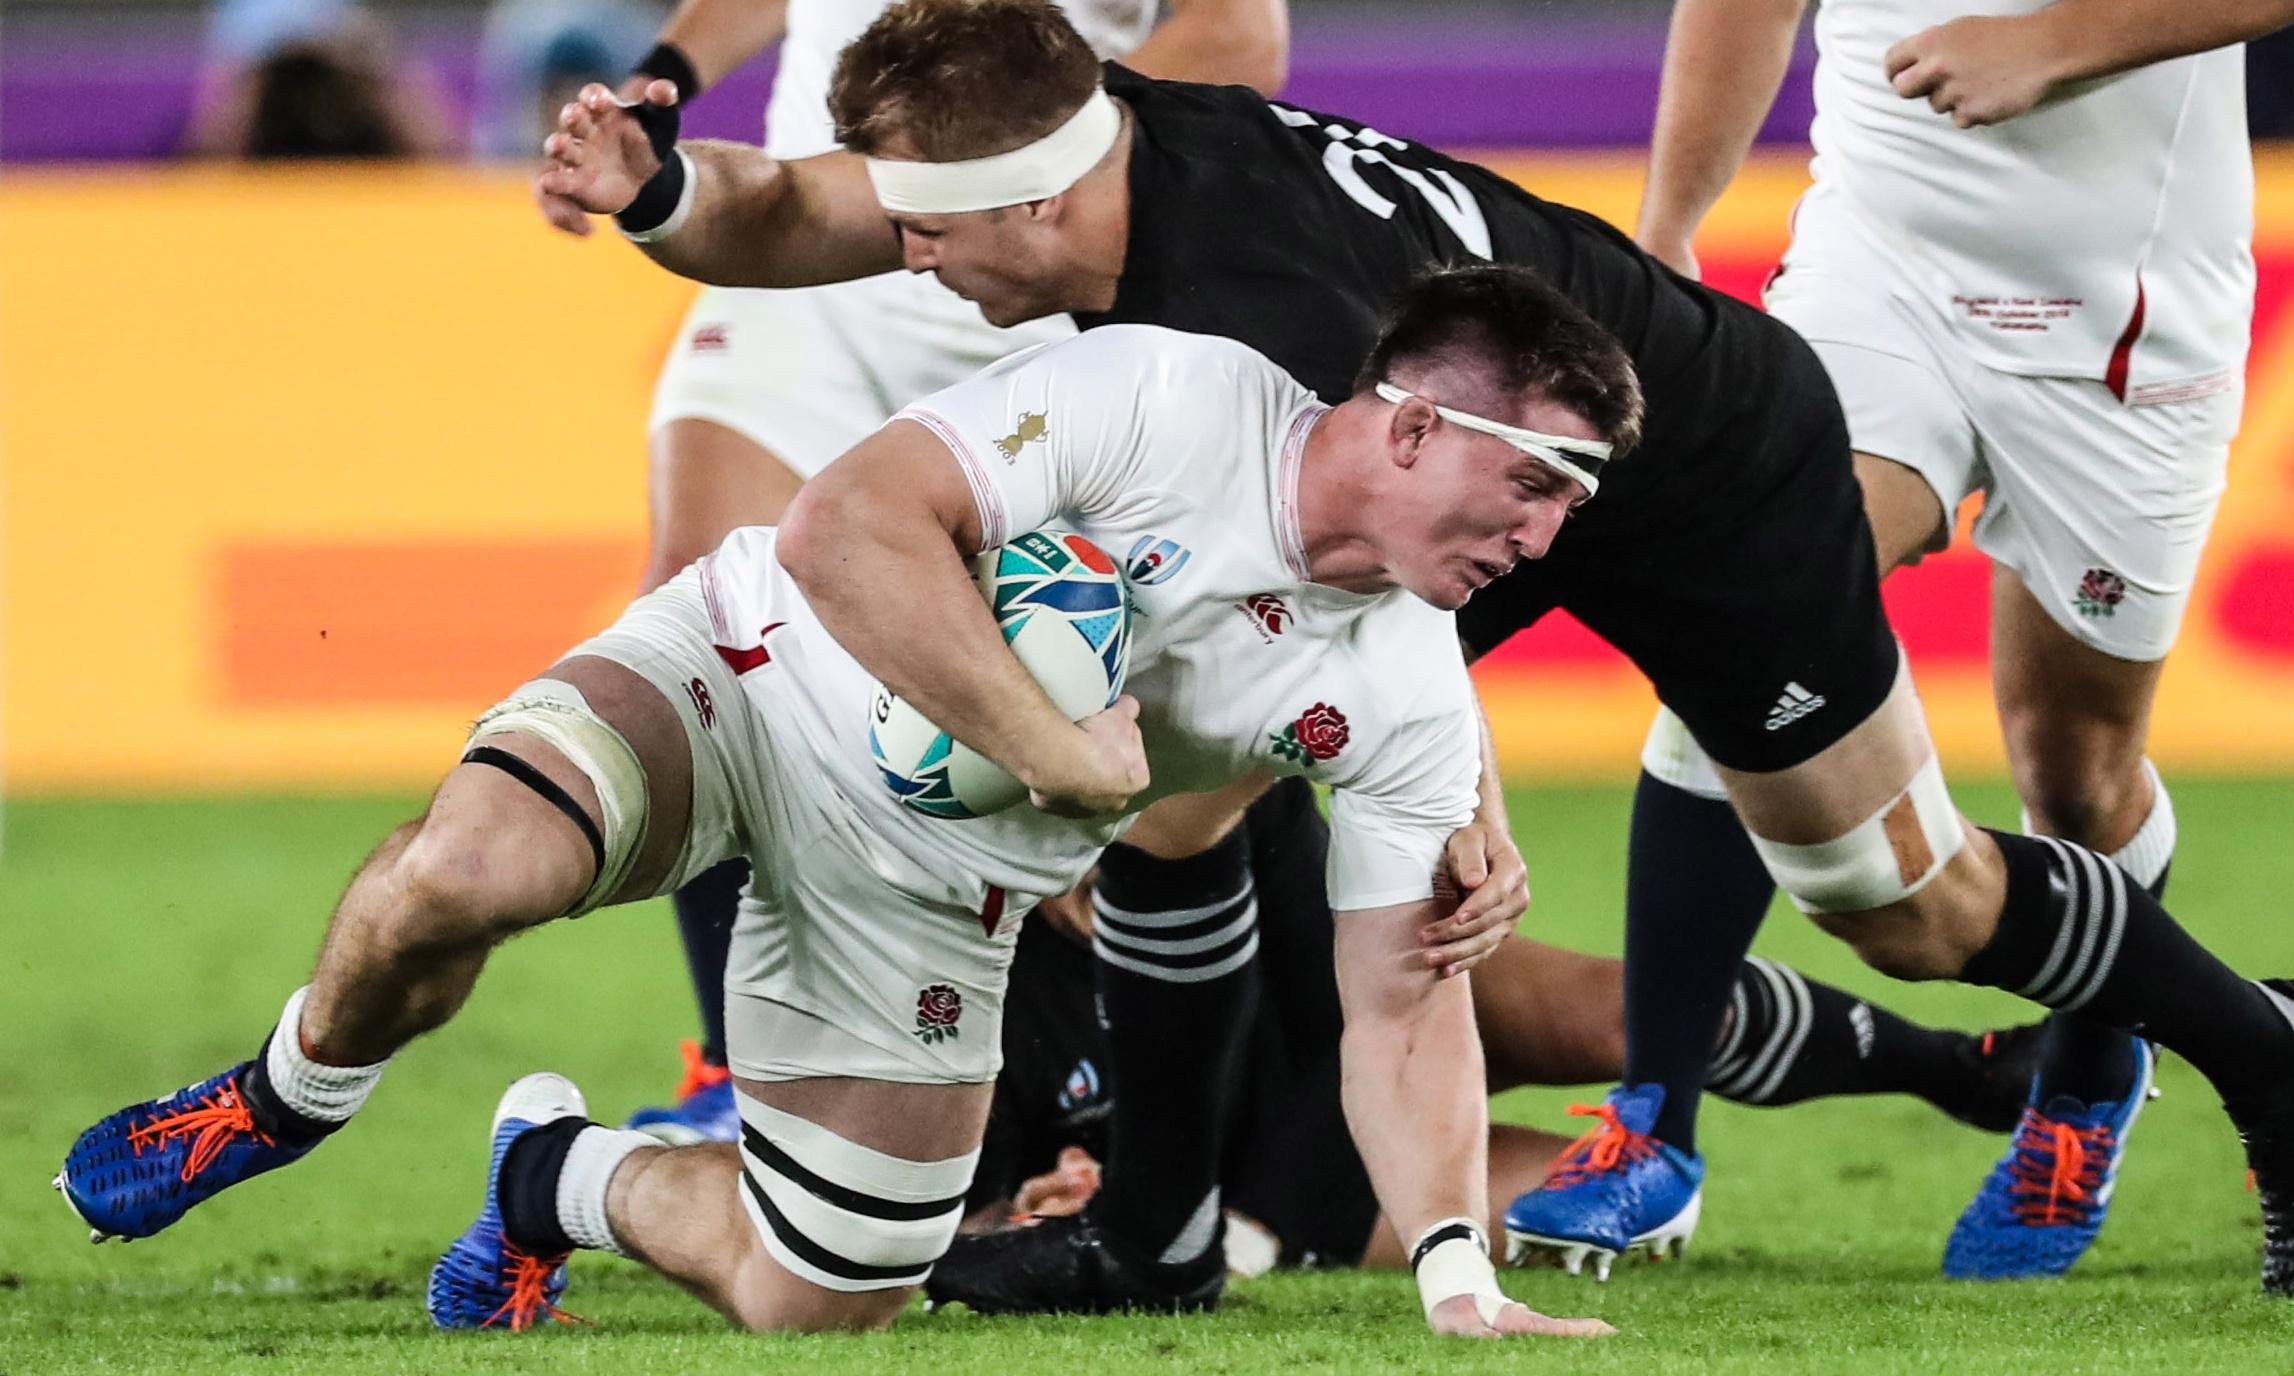 Rugby World Cup awards: the best player, the best match – our verdicts